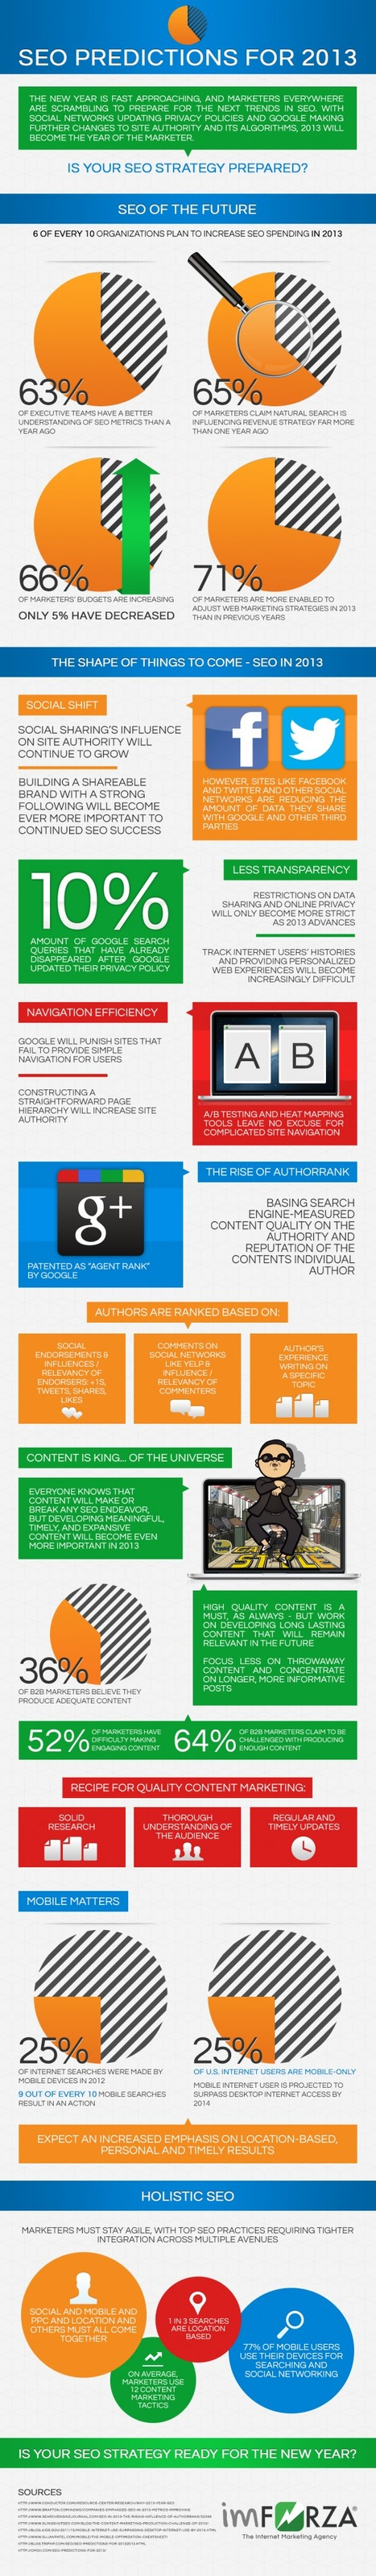 Seo Strategies For The Year 2013 - Seo Sandwitch Blog | Social Media (network, technology, blog, community, virtual reality, etc...) | Scoop.it